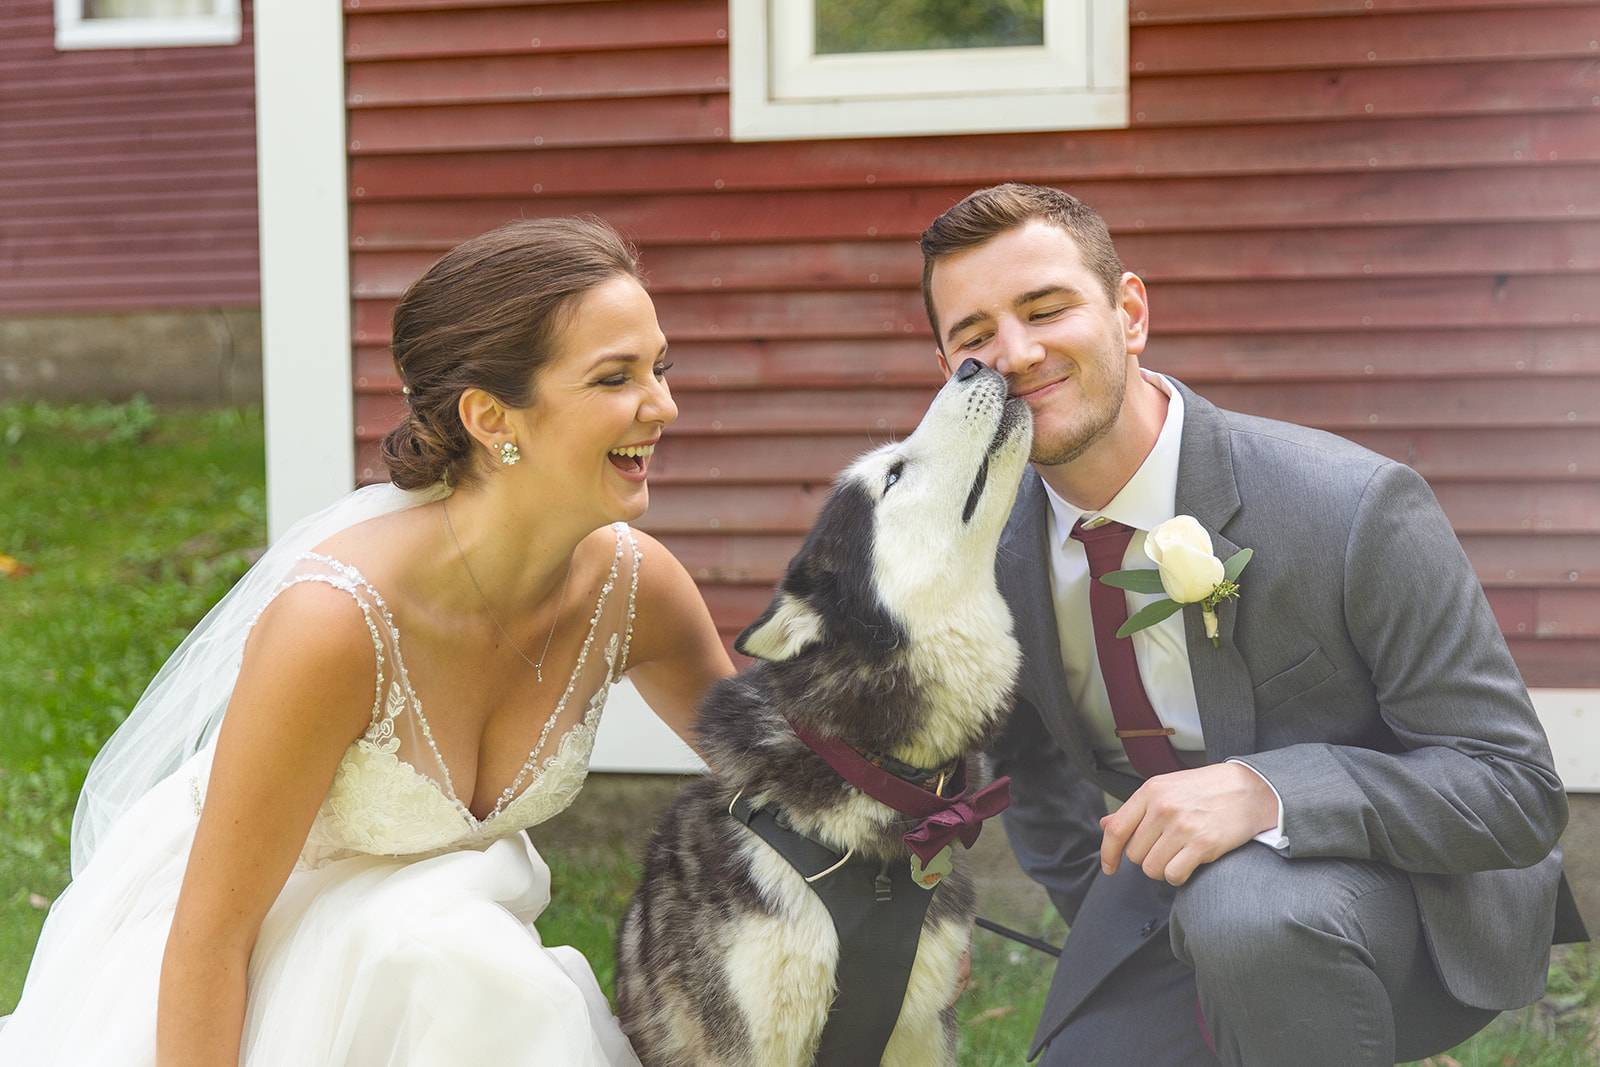 Bride and groom pose with husky dog on wedding day as dog kissing groom's face